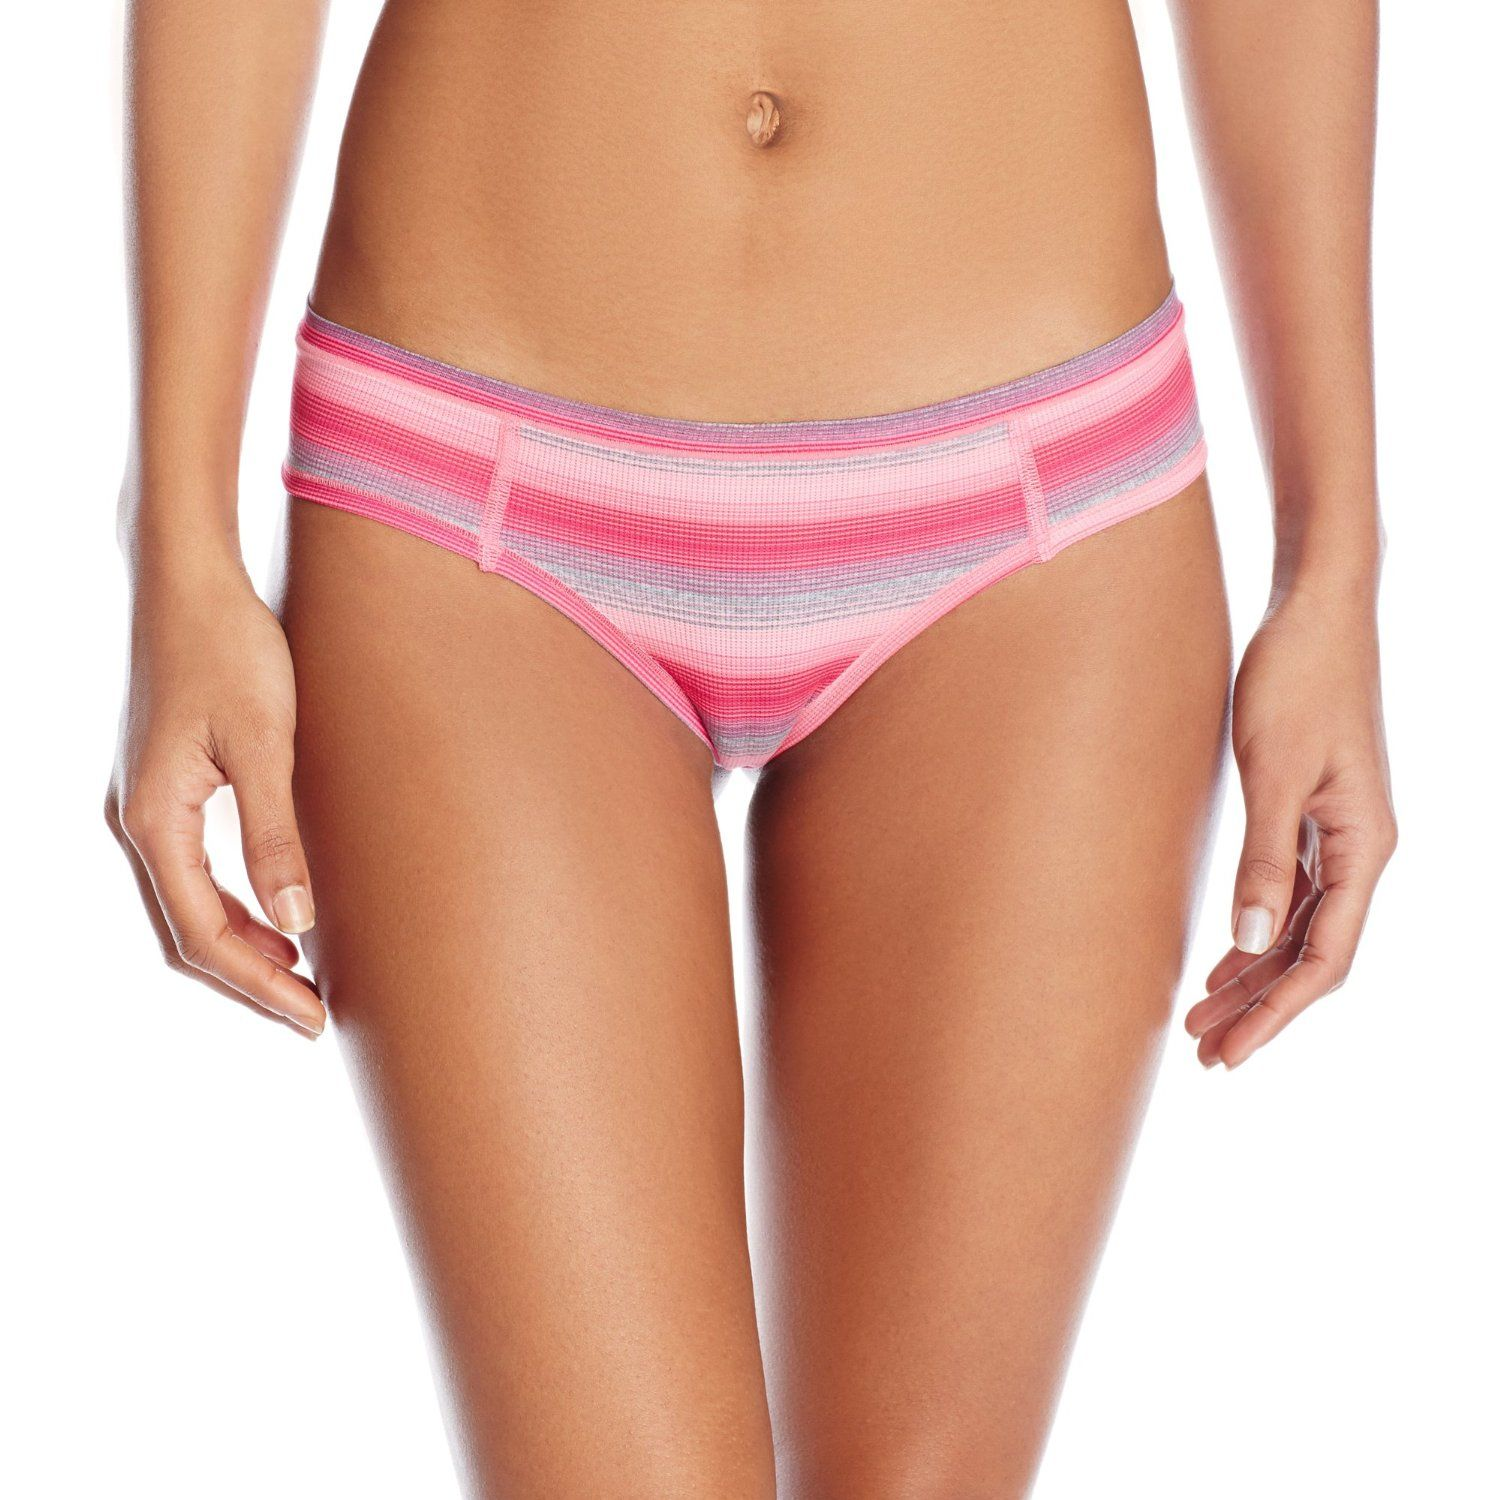 Pin on SPORTS BRAS/WORKOUT CLOTHES